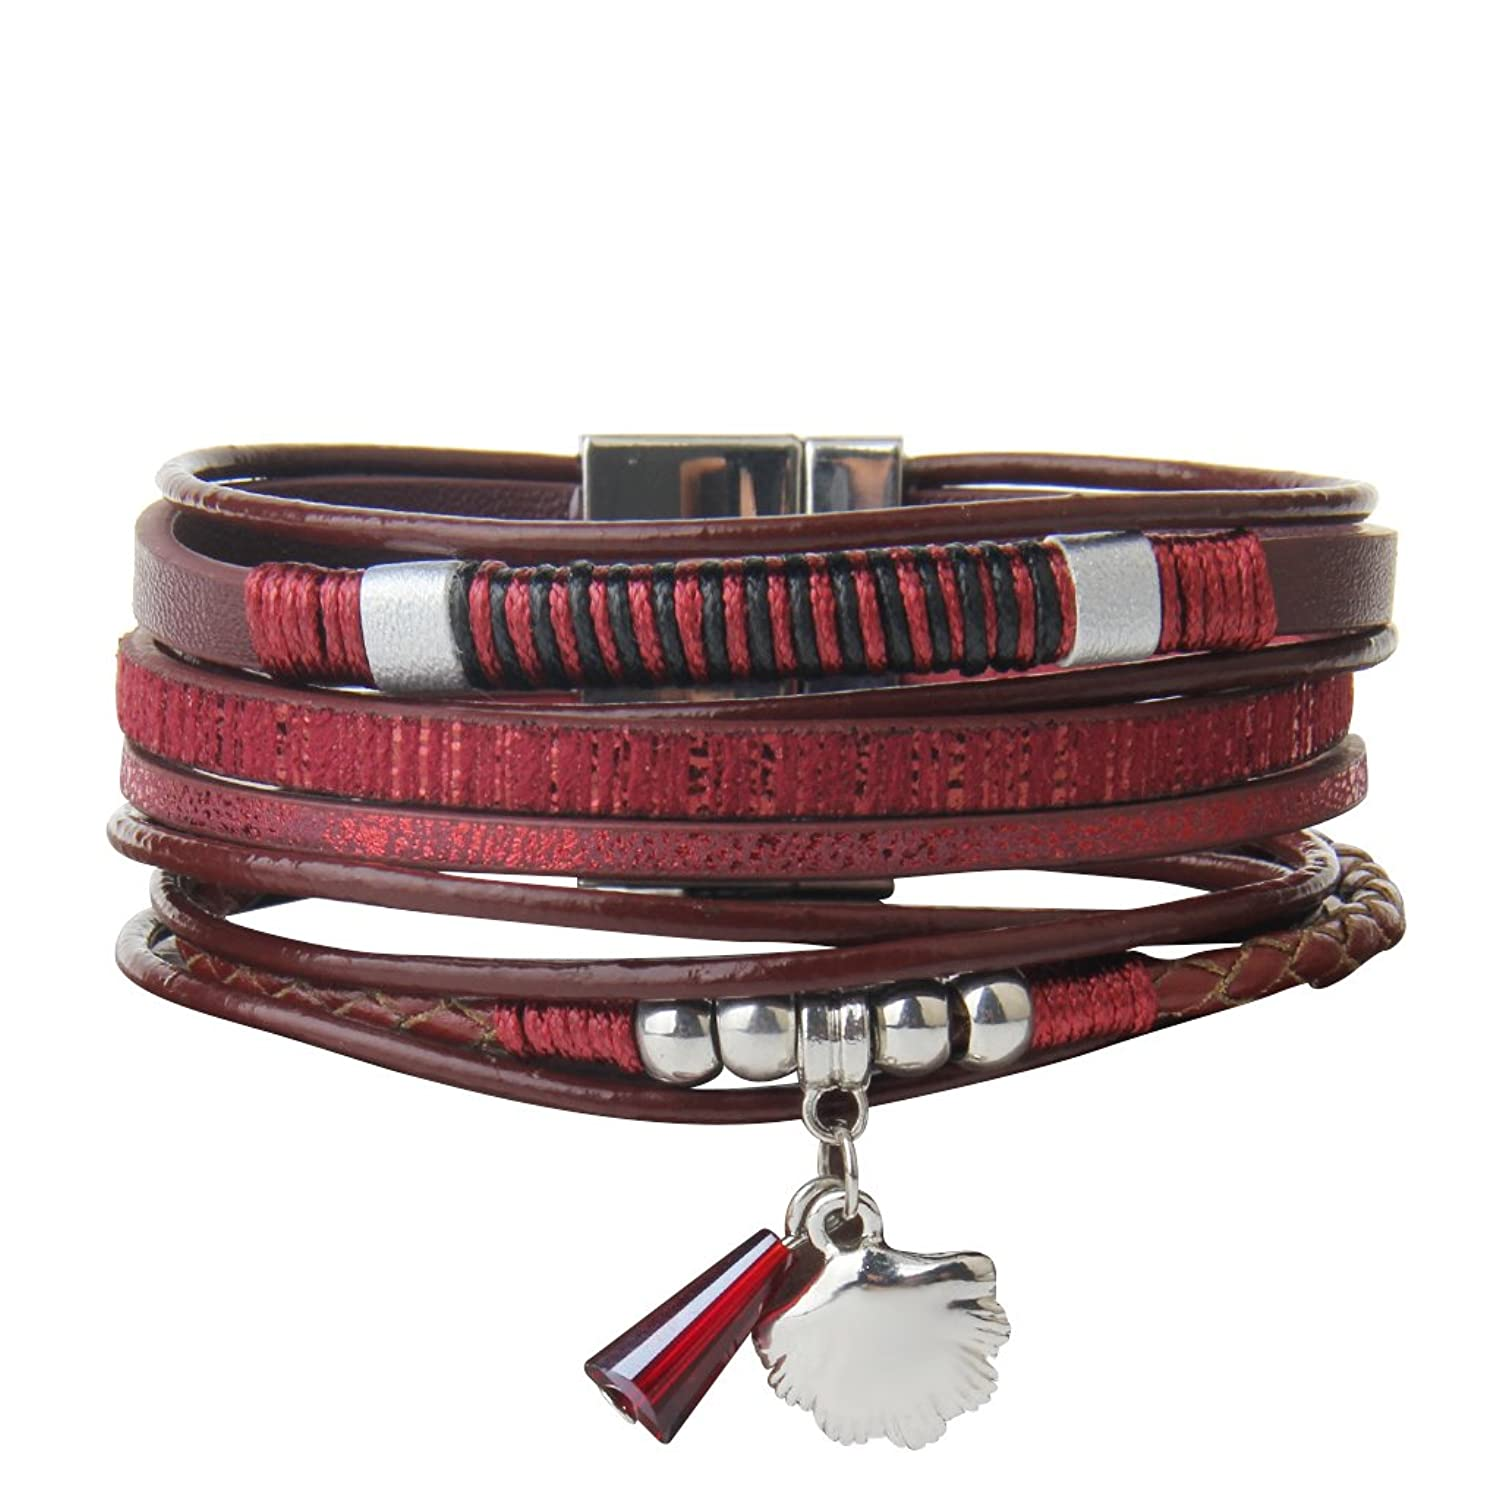 Red Leather Ropes String Wrapped Shell Accent Cuff Bracelets - DeluxeAdultCostumes.com